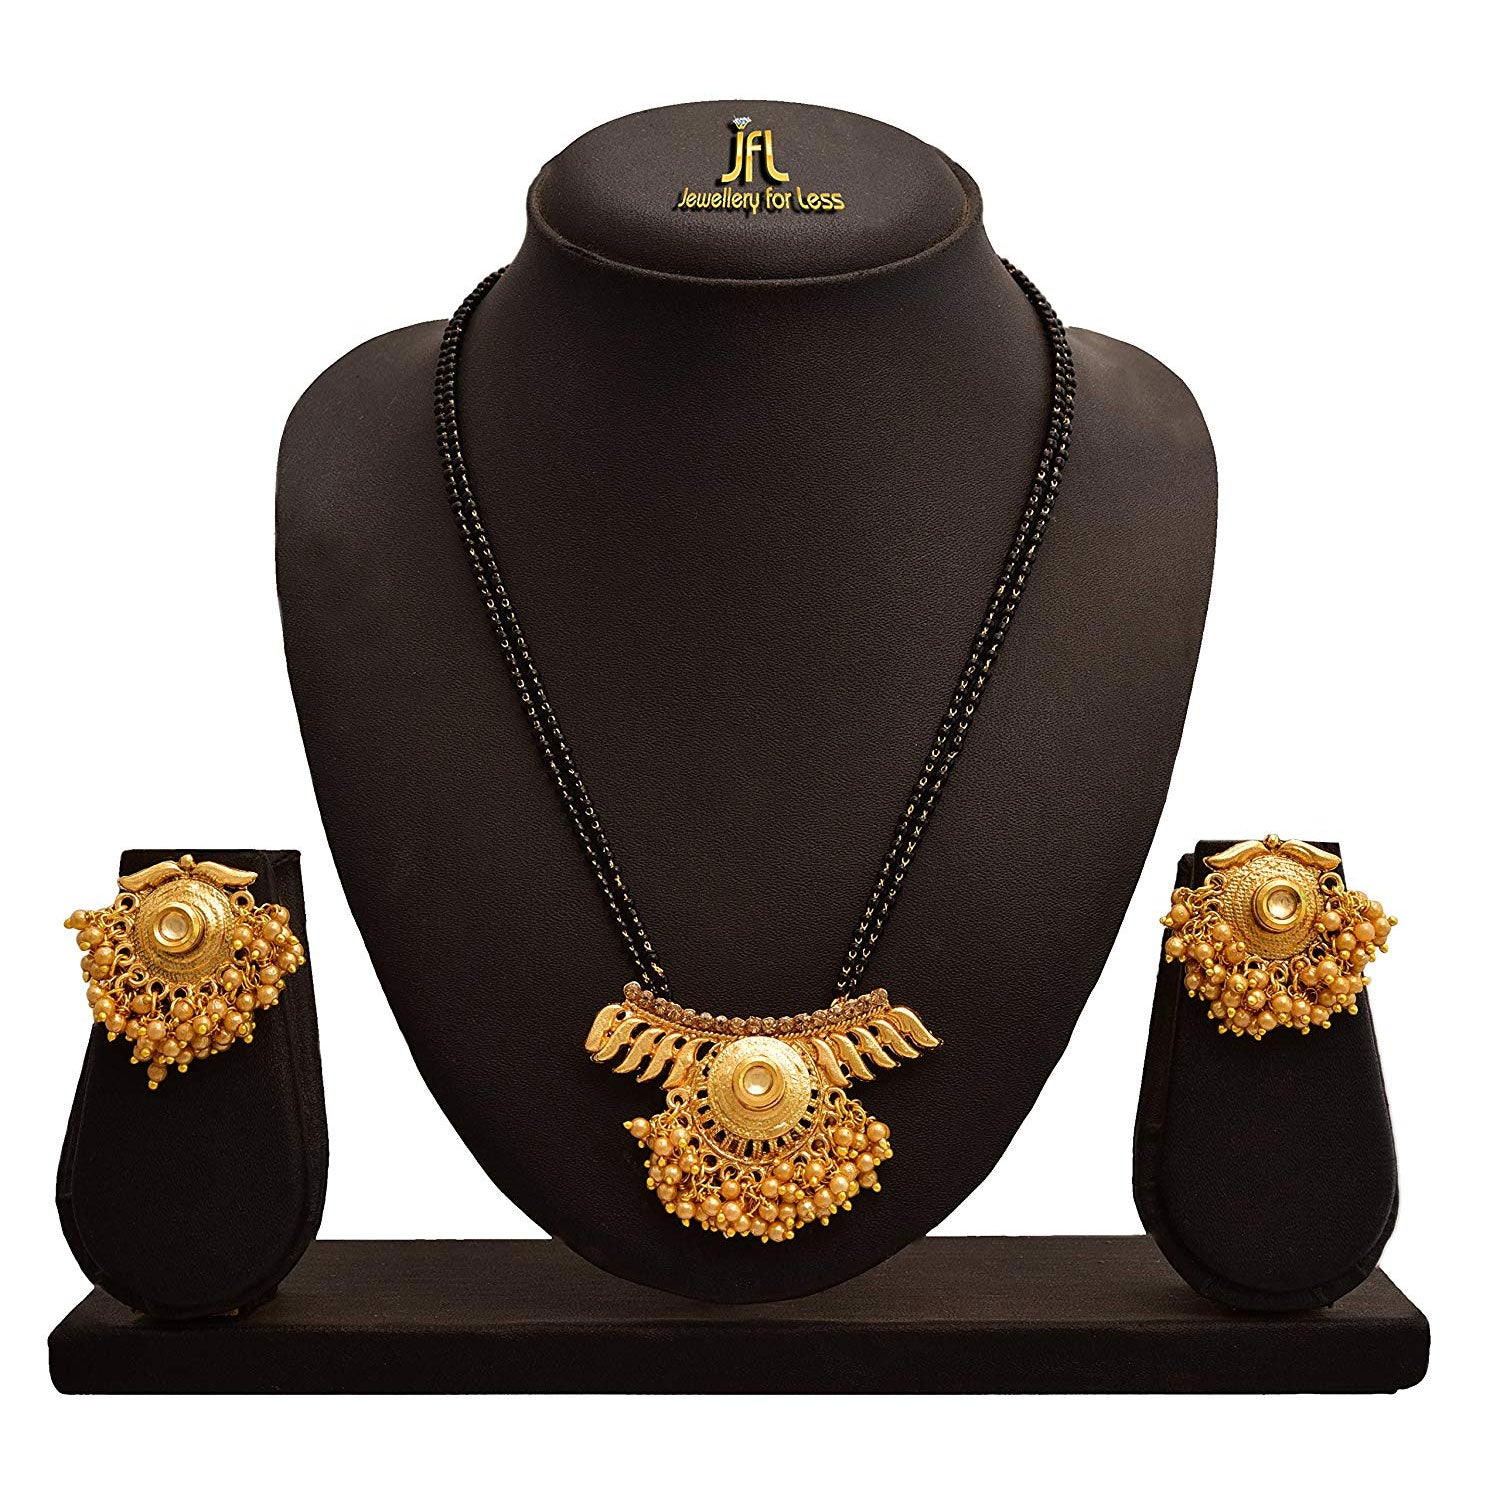 JFL -Traditional Fashion Ethnic One Gram Gold Plated Kundan & Pearl Designer Mangalsutra Set For Women.